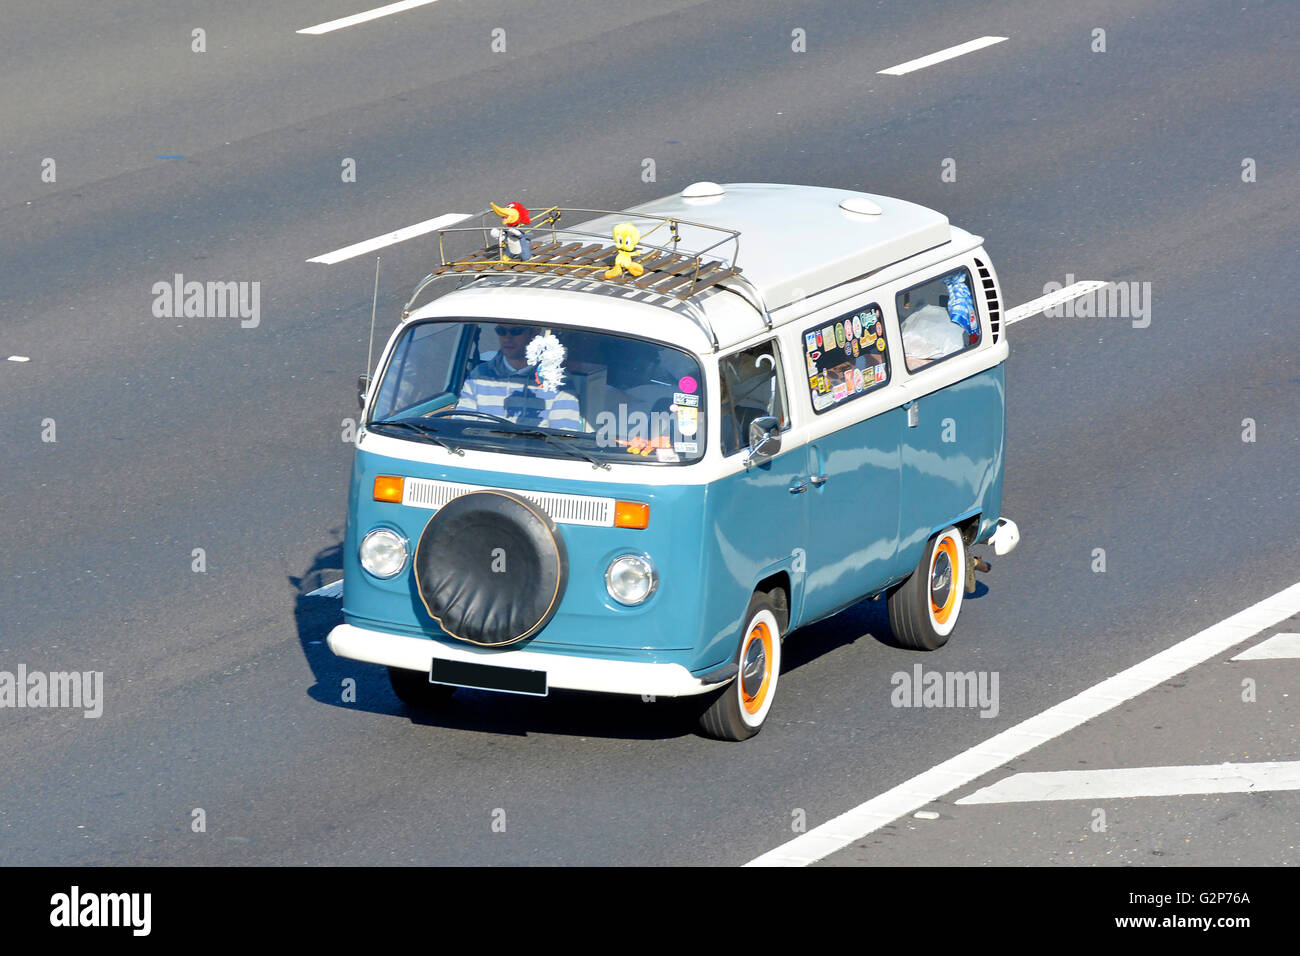 Classic VW Volkswagen camper van driving along English UK motorway obscured numberplate - Stock Image